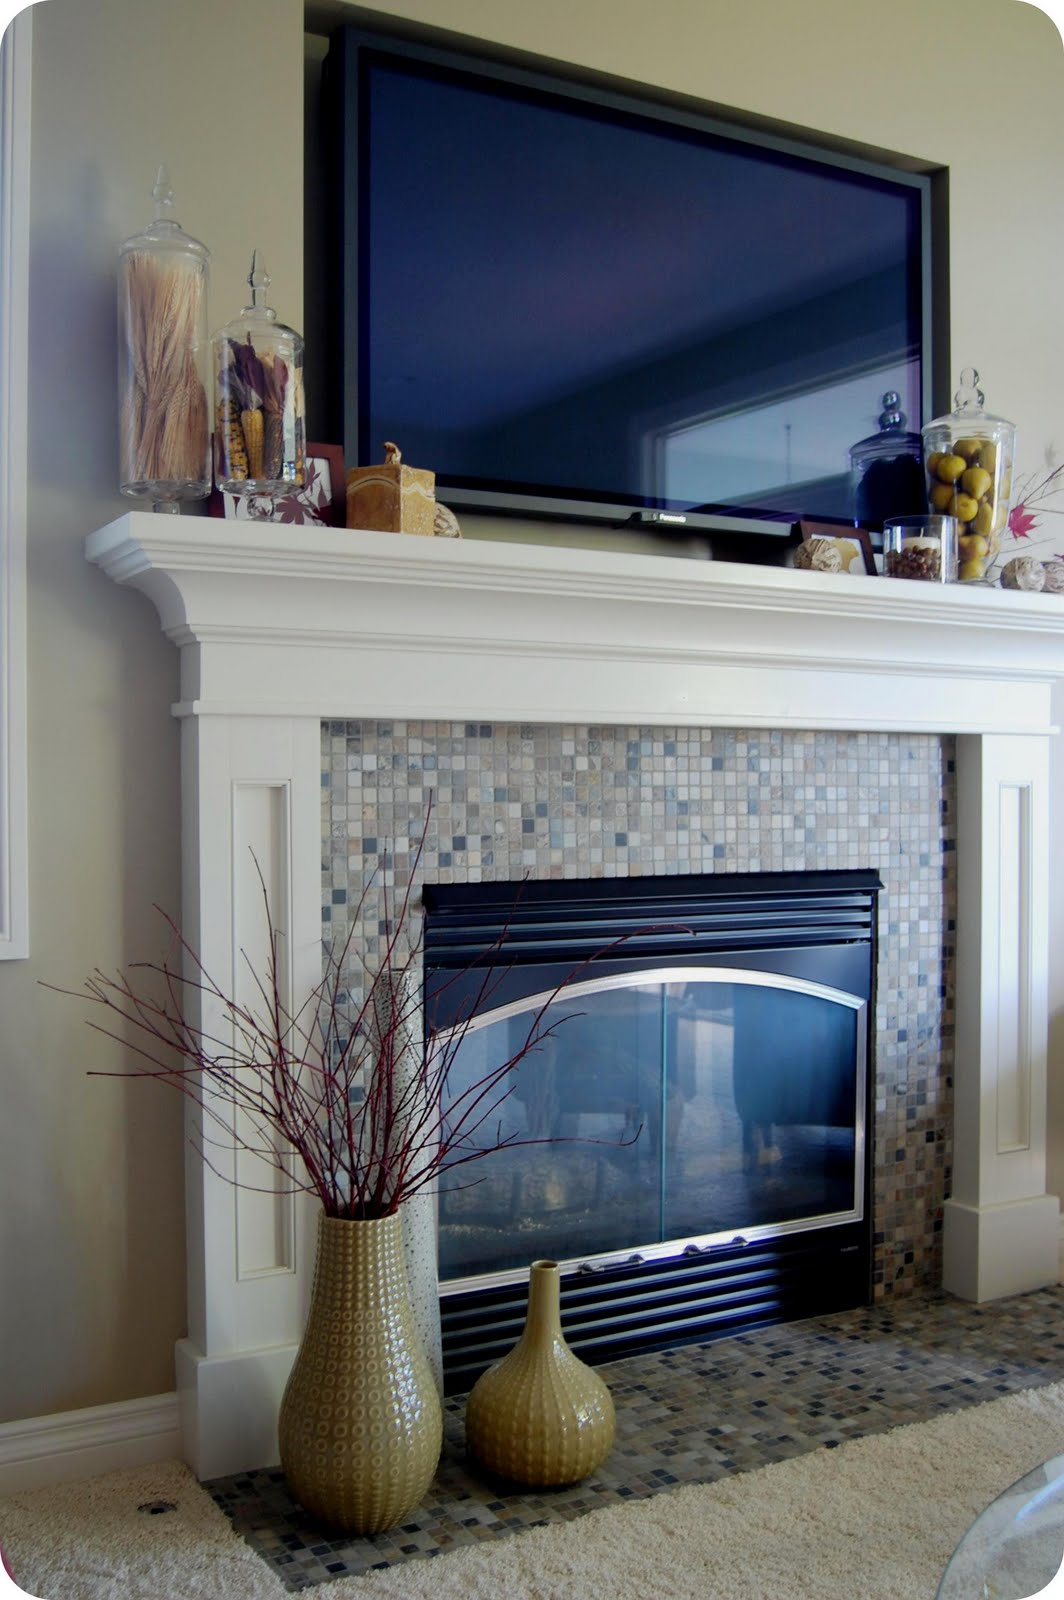 How to decorate a fireplace mantel with a tv fireplace design ideas how to decorate a fireplace mantel with a tv teraionfo